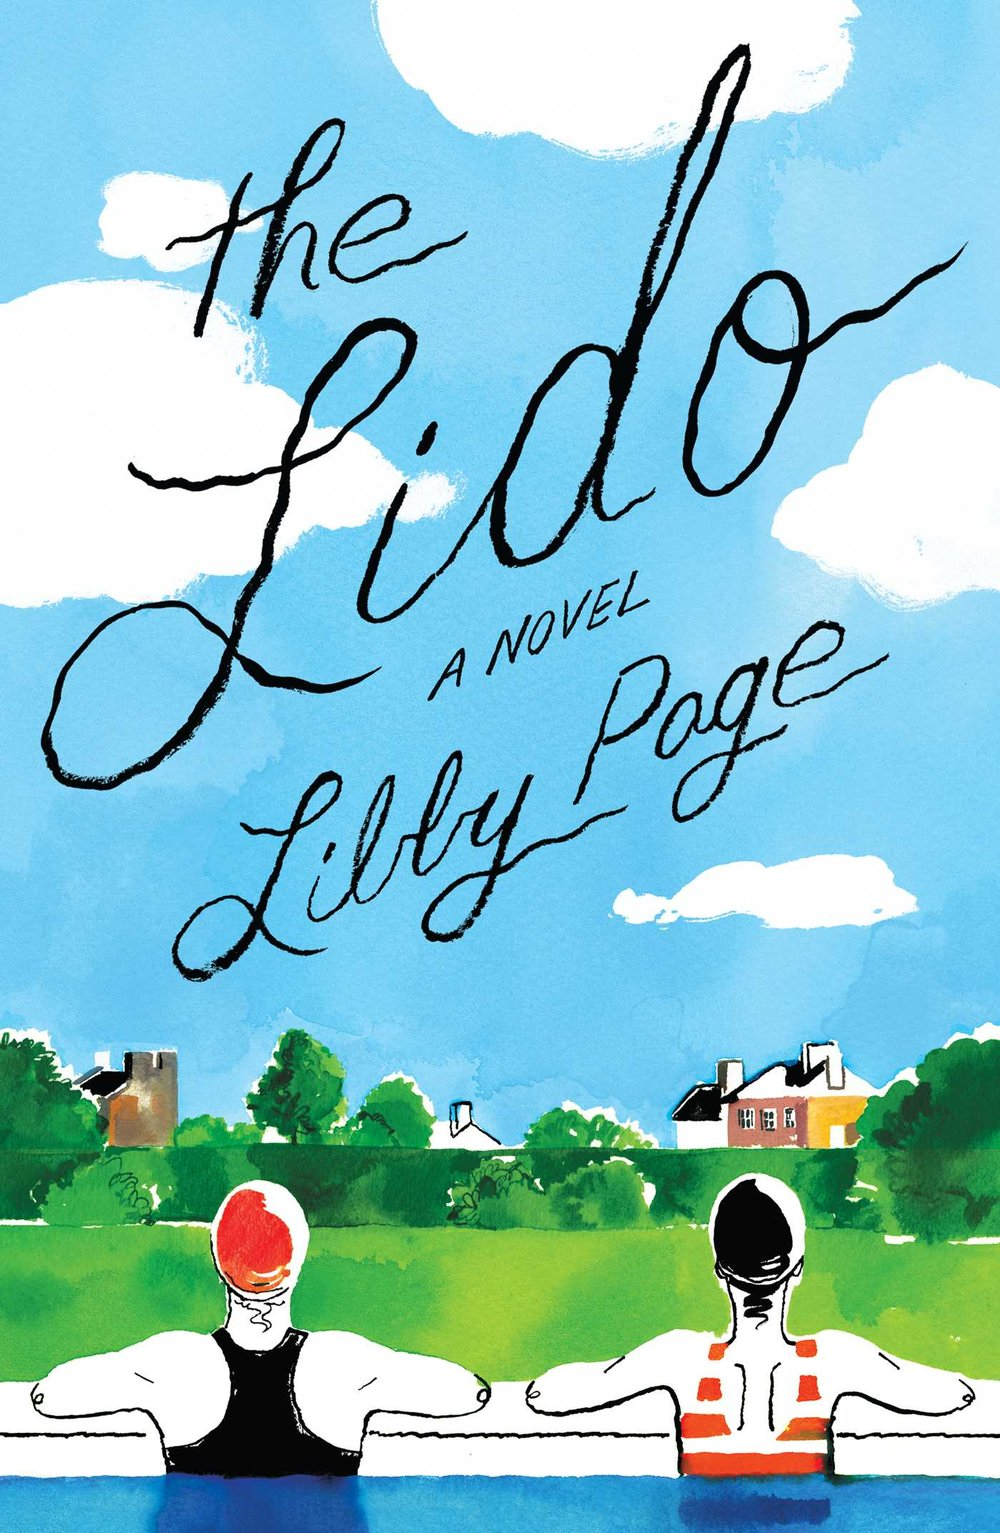 British Ladies, peaceful protests, and a swimming pool - I'll admit, the gorgeous cover grabbed me first. But when I read that this tale is about an unlikely friendship between an anxious young reporter and a fascinating elderly lady banding together with their neighbors to save a community landmark, I hit pre-order immediately.- Emily